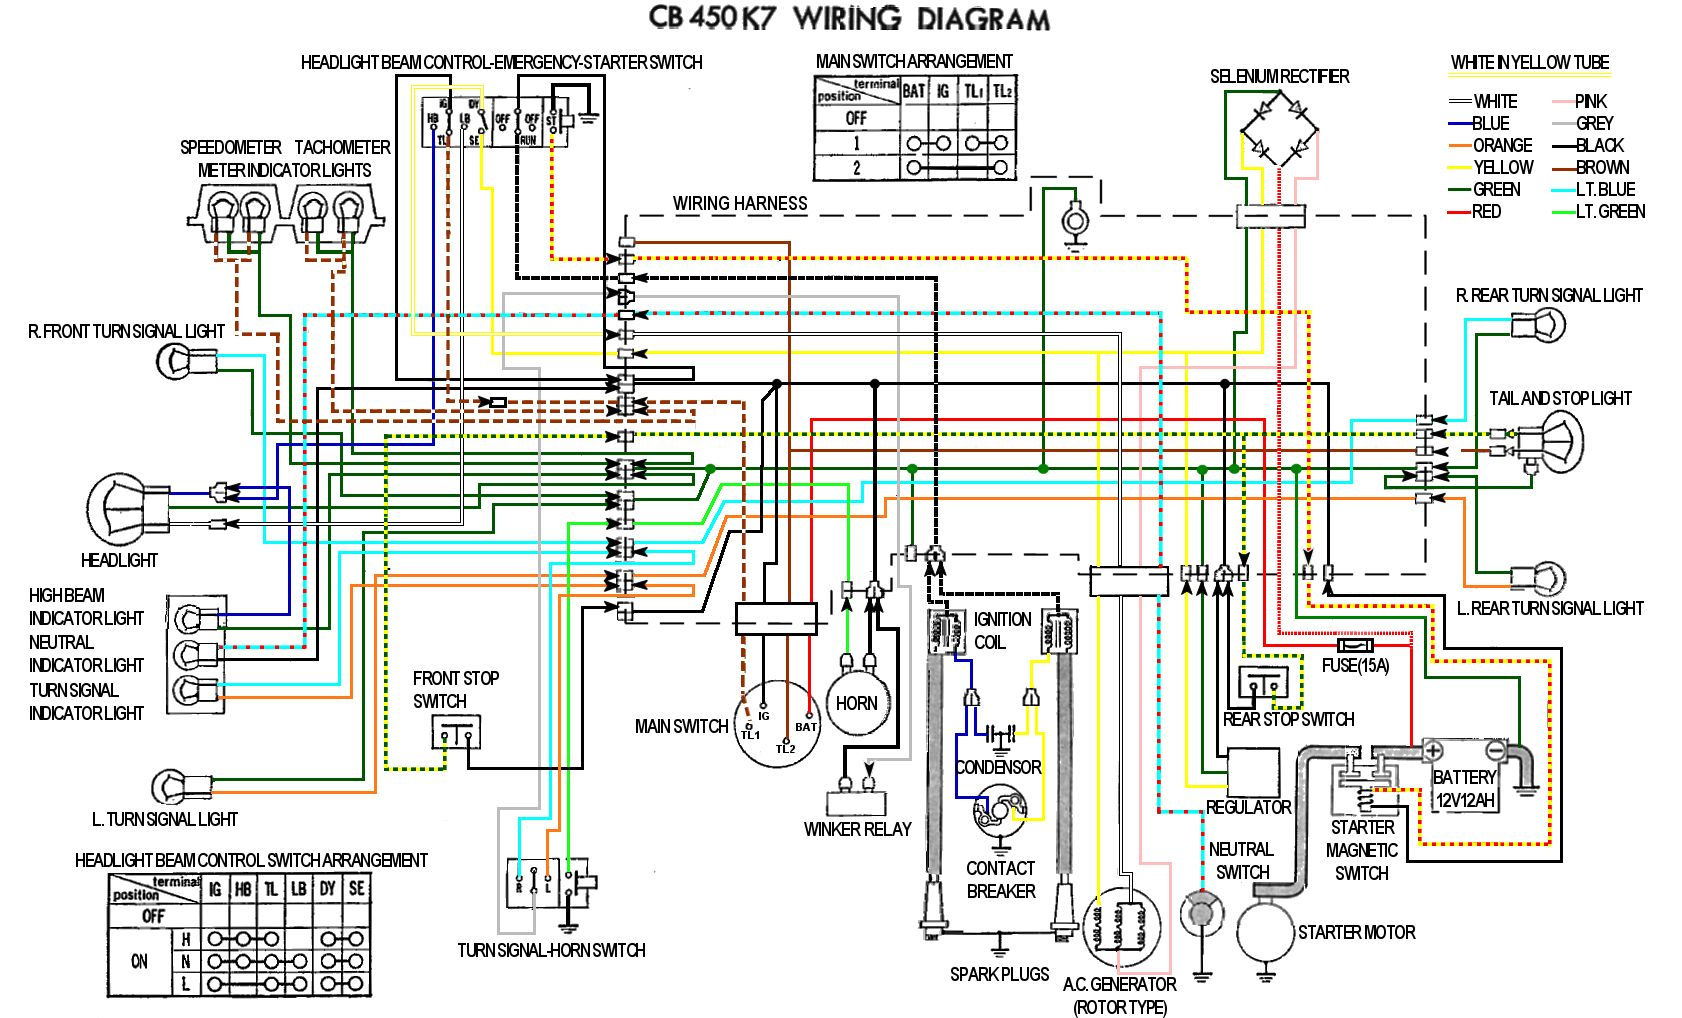 hight resolution of cb450 color wiring diagram now corrected ford wiring diagrams cb450 color wiring diagram